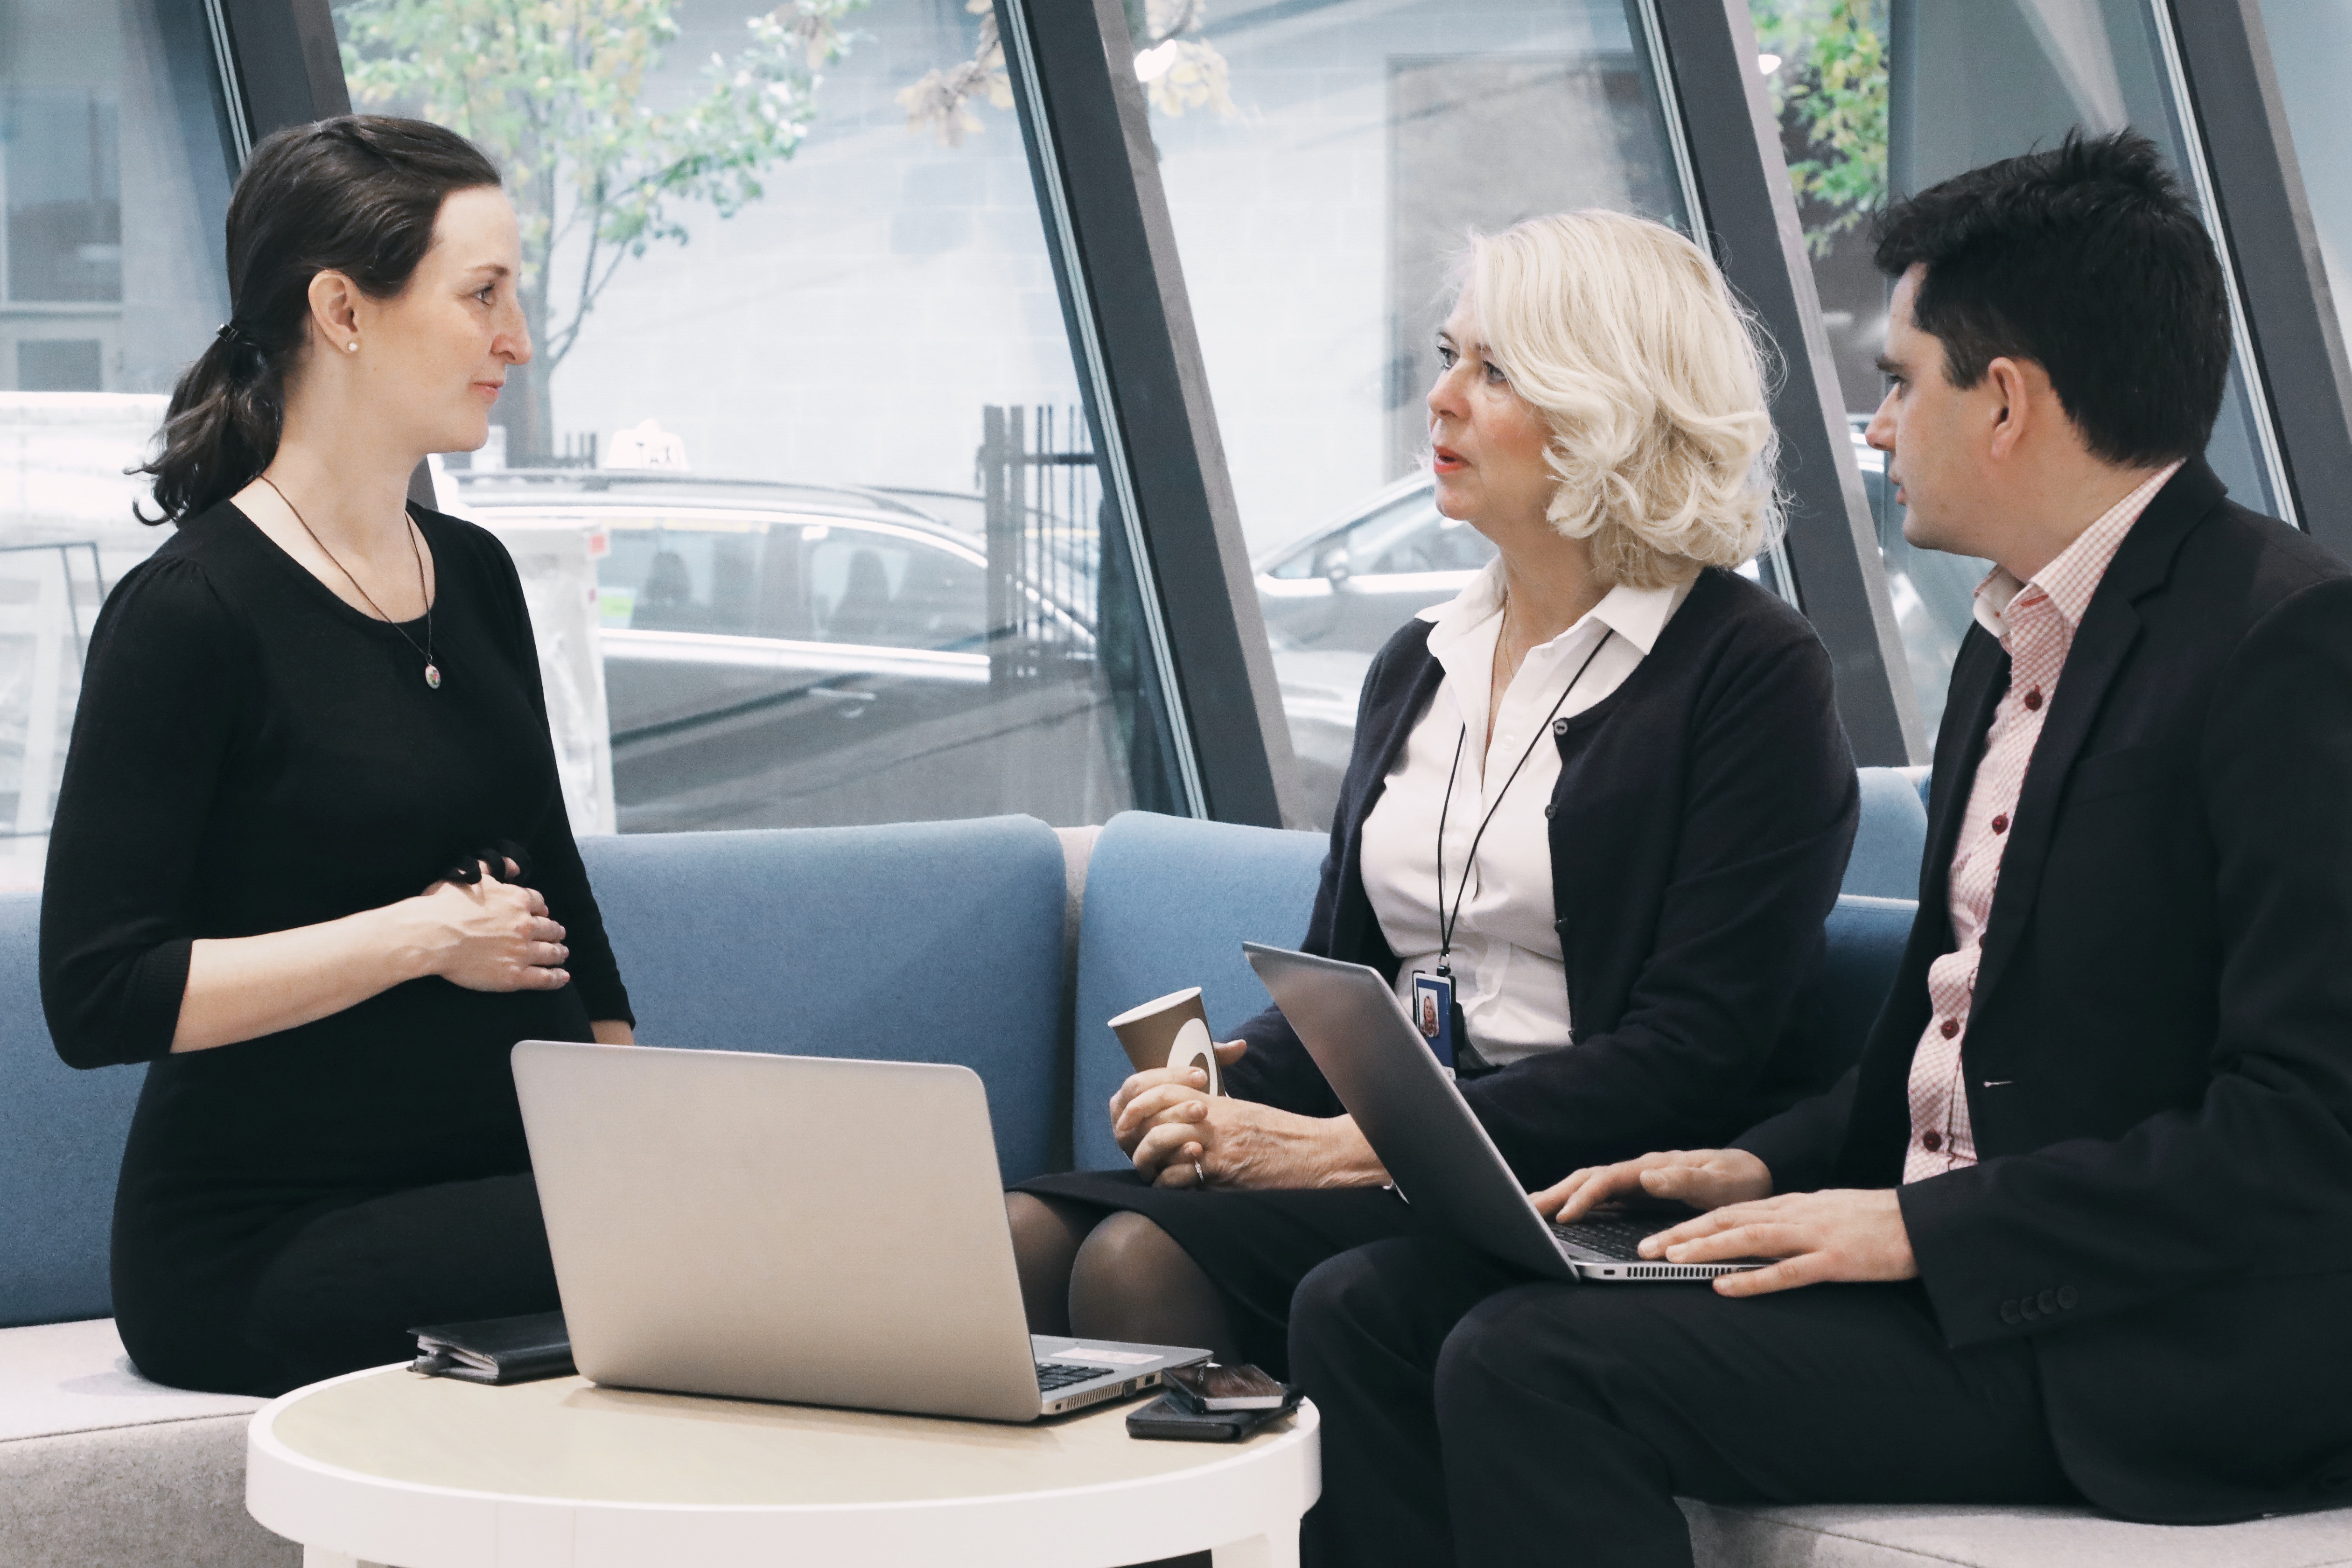 A pregnant employee talking to two colleagues